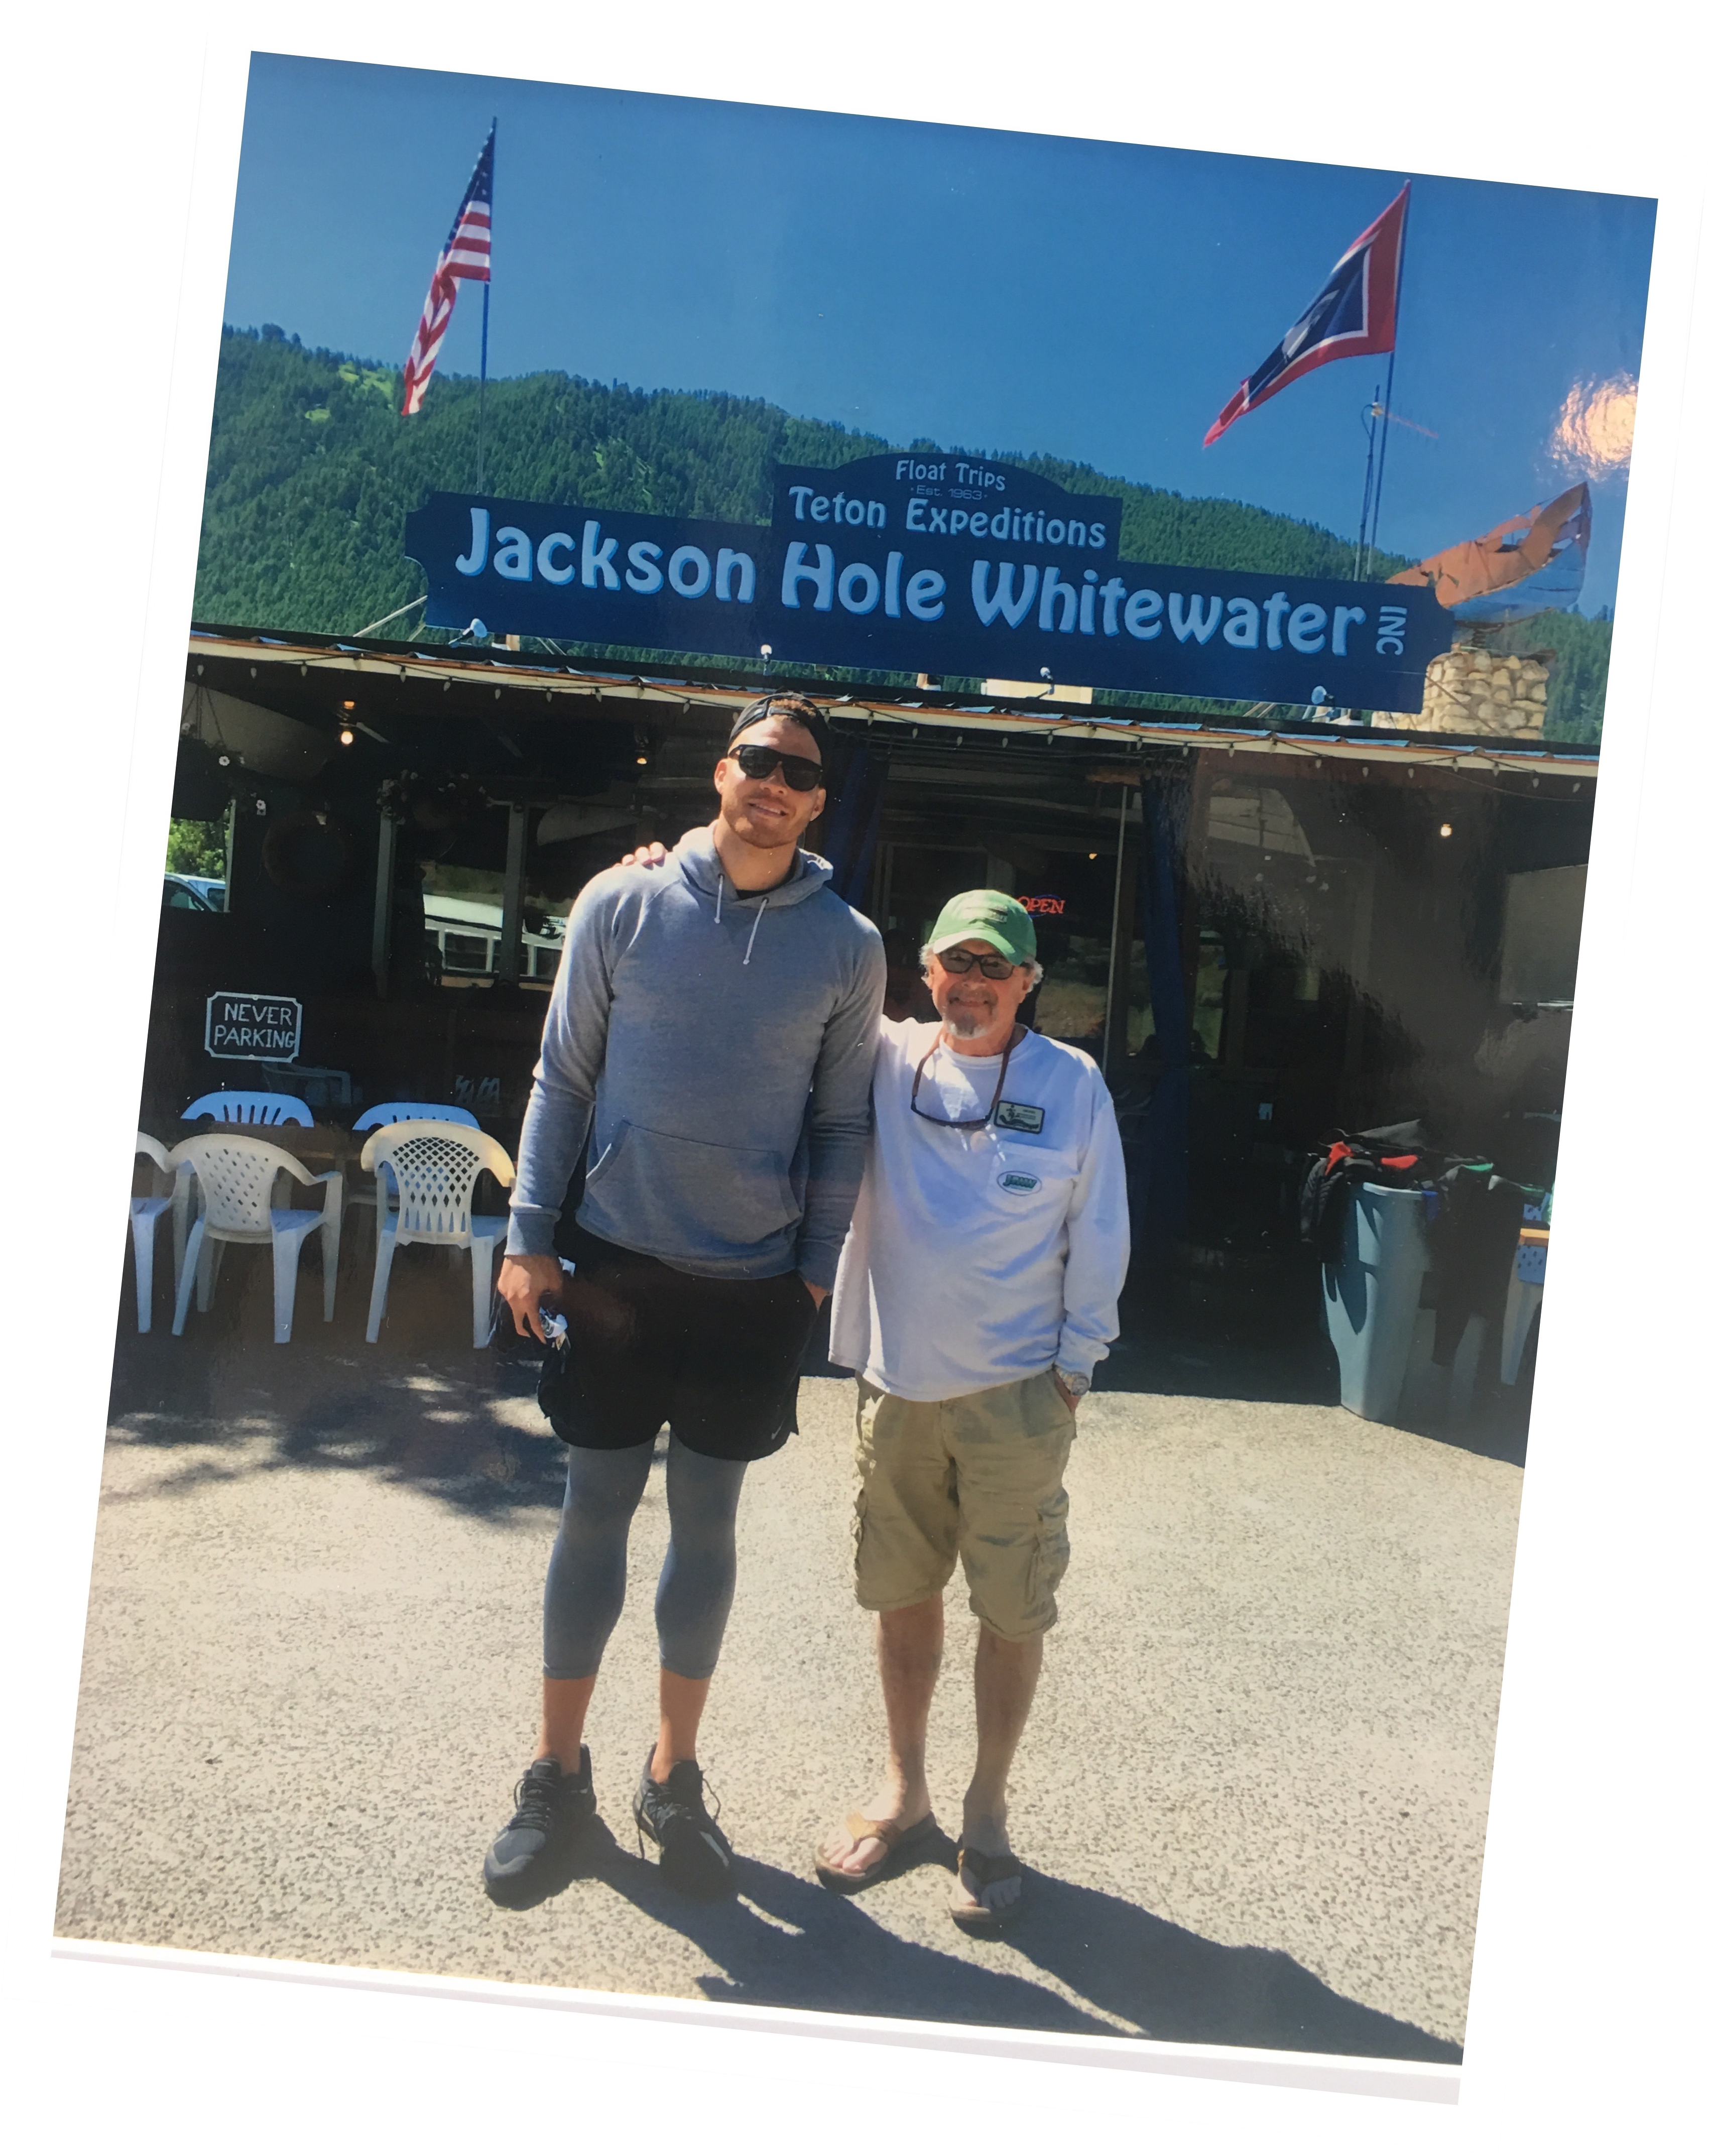 Detroit Piston Blake Griffin in front of Jackson Hole Whitewater building